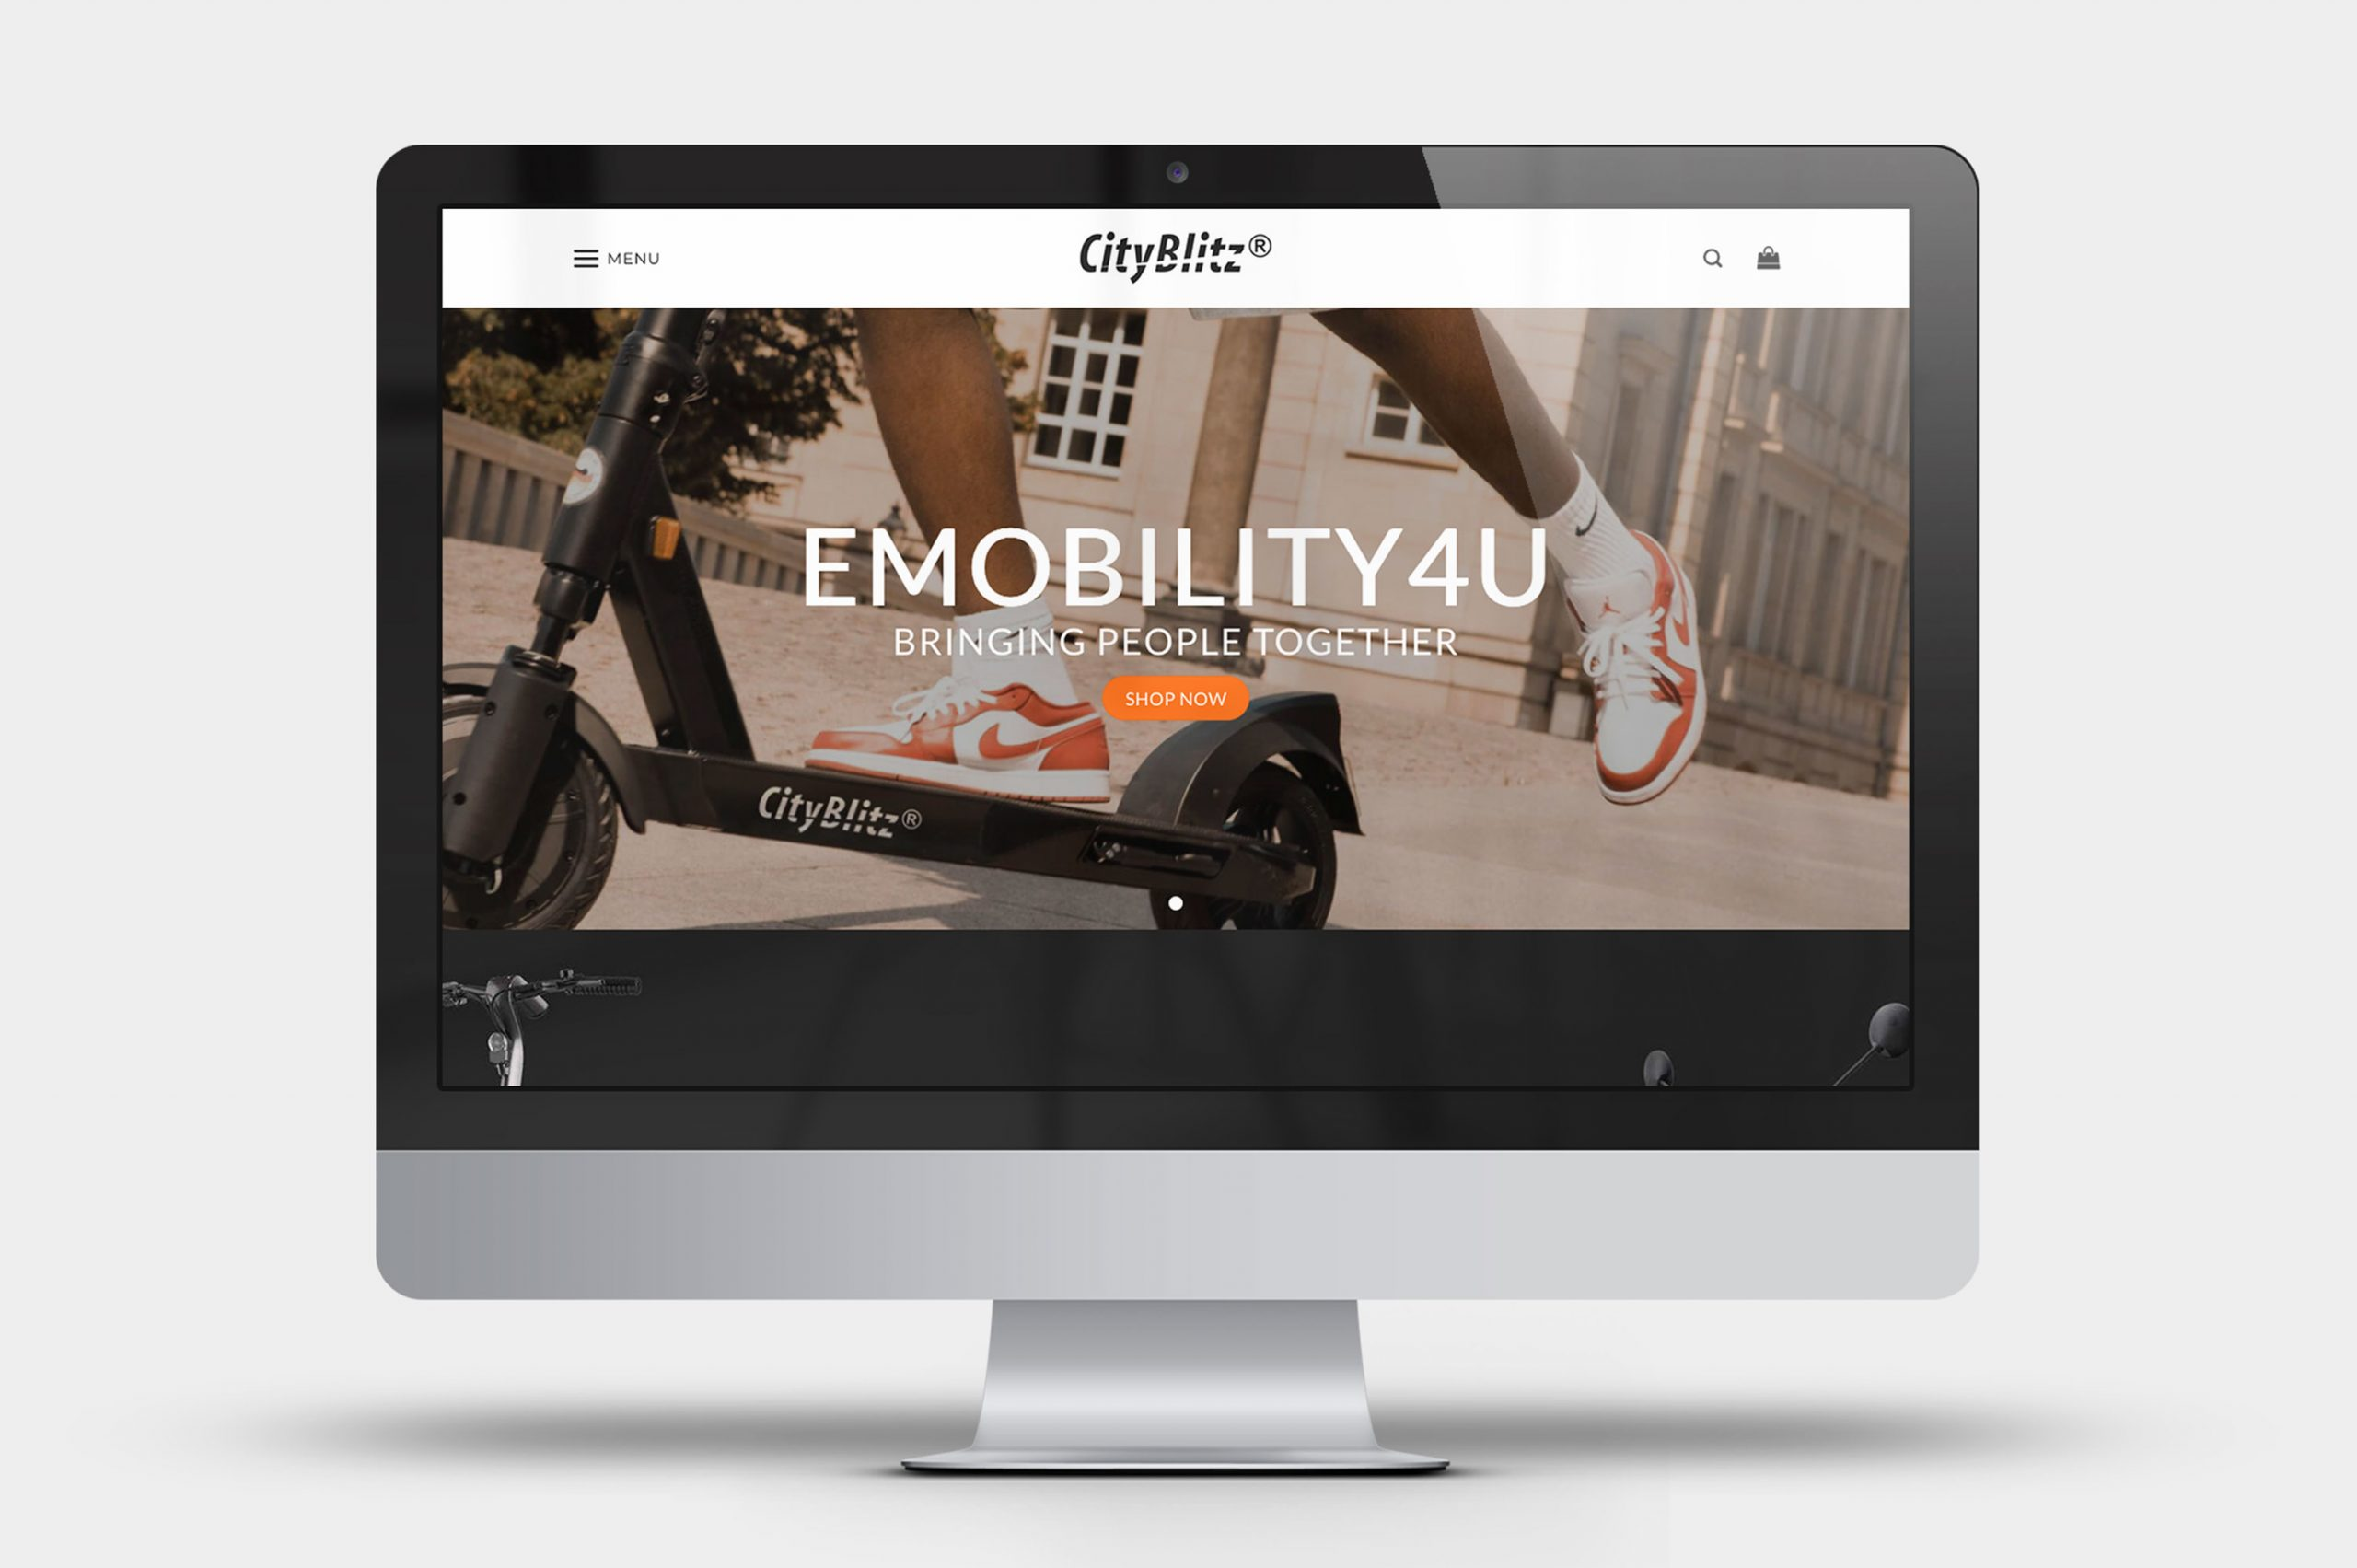 CityBlitz Electric Scooter eCommerce Website when viewed on a desktop